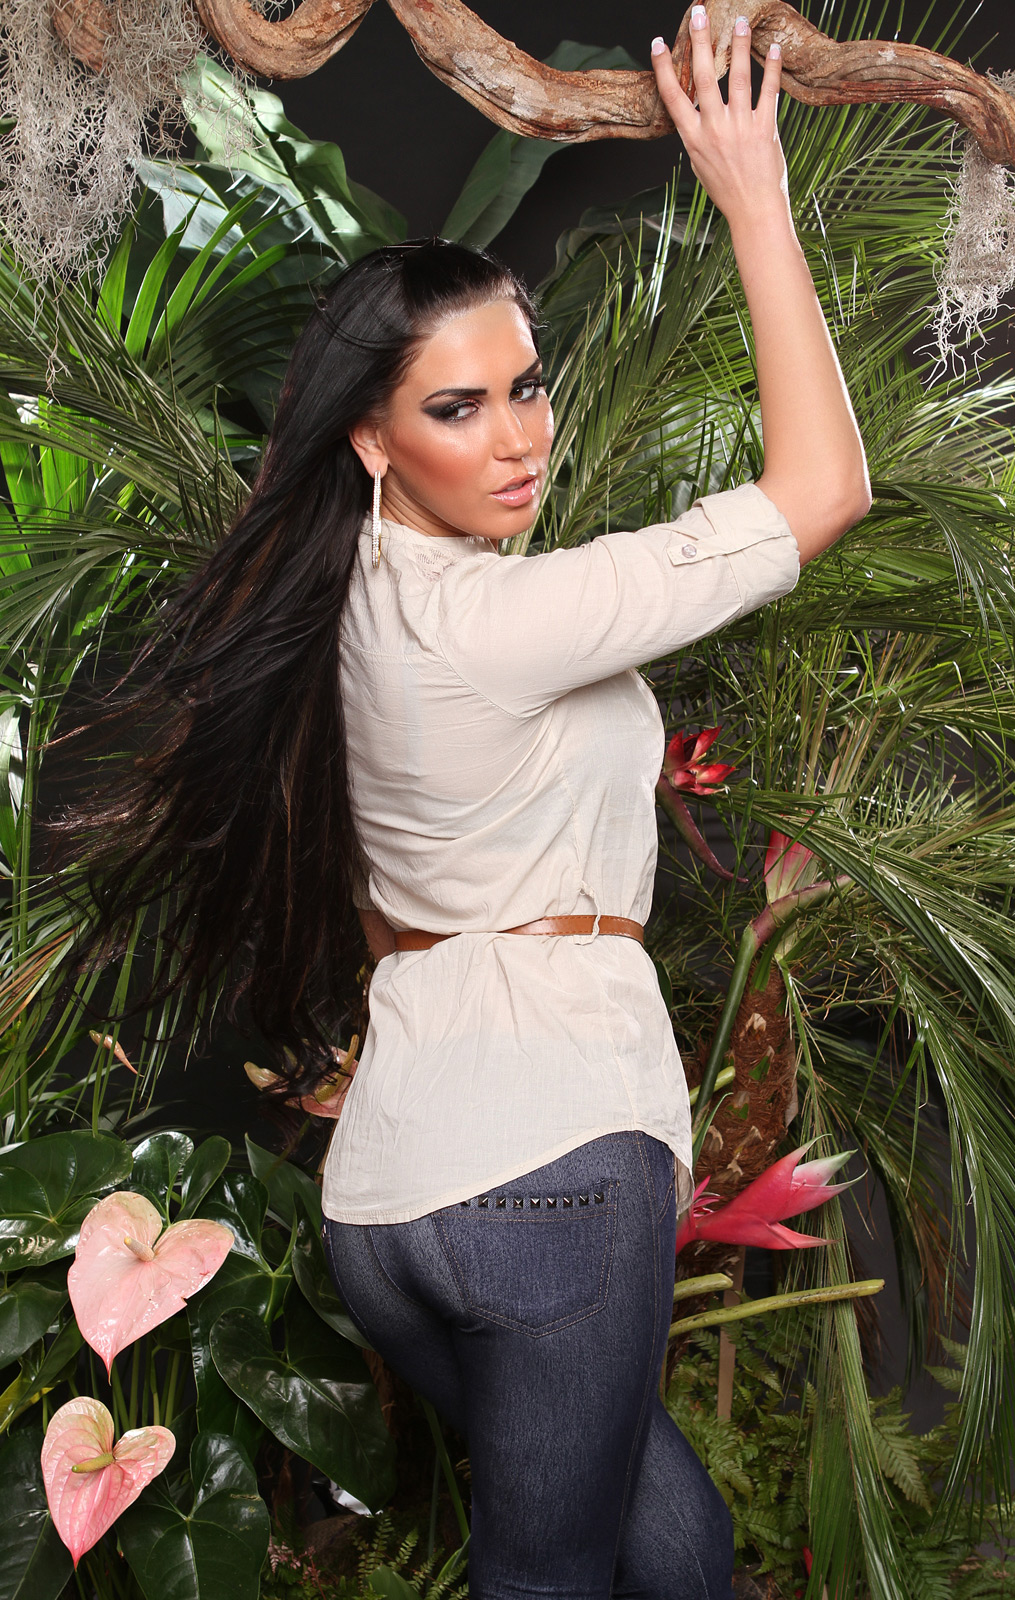 Ladies Shirt with Lace Shoulders & Brown Belt - Beige - Size S - Click Image to Close